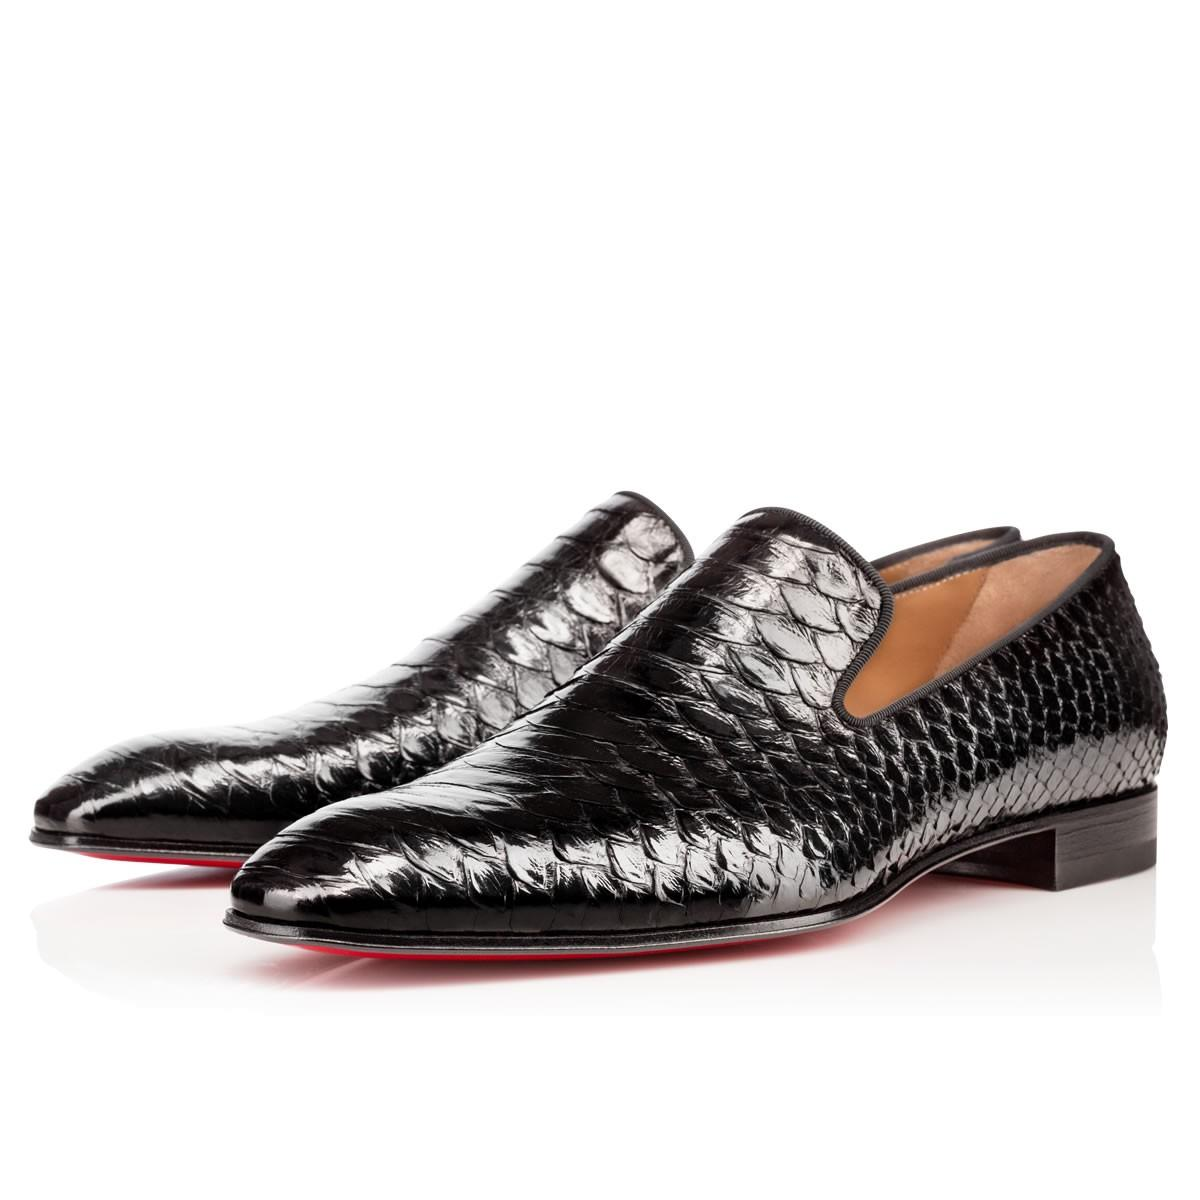 Hot Sale-oafers Luxury Party Wedding Shoes Designer BLACK PATENT LEATHER Suede Dress Shoes For Mens Slip On Flats